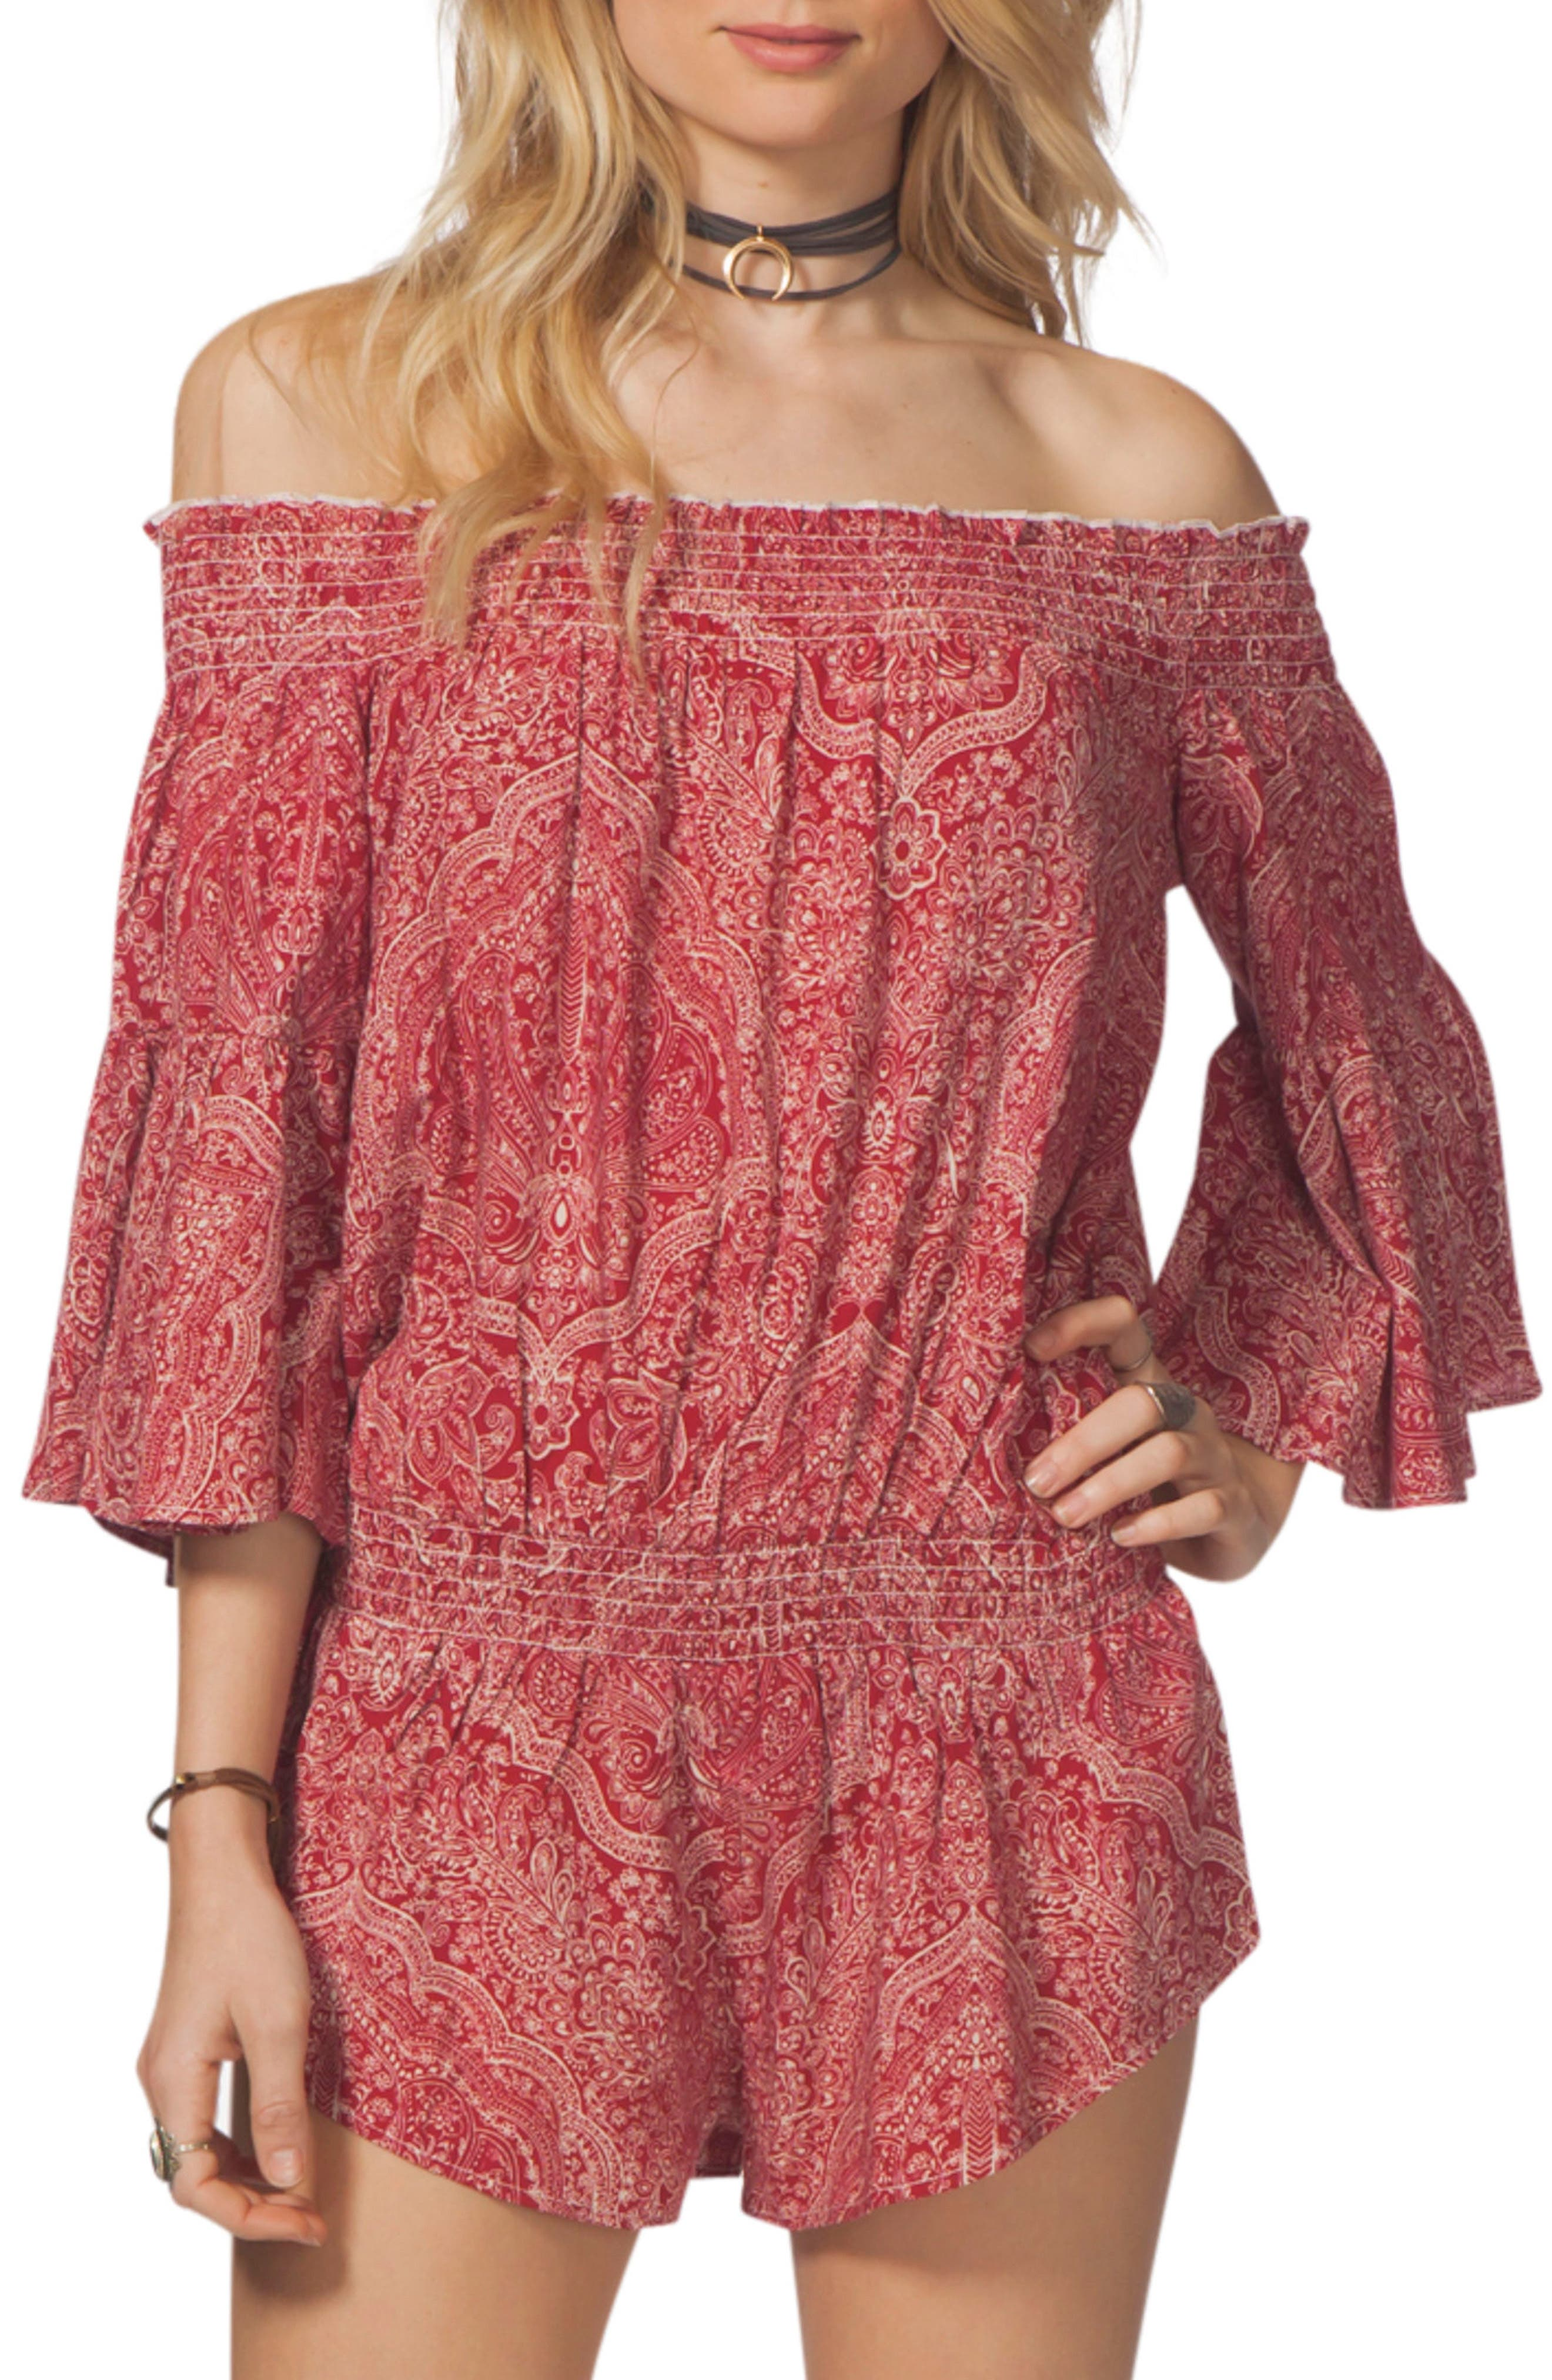 Alternate Image 1 Selected - Rip Curl Everglow Paisley Print Off the Shoulder Romper